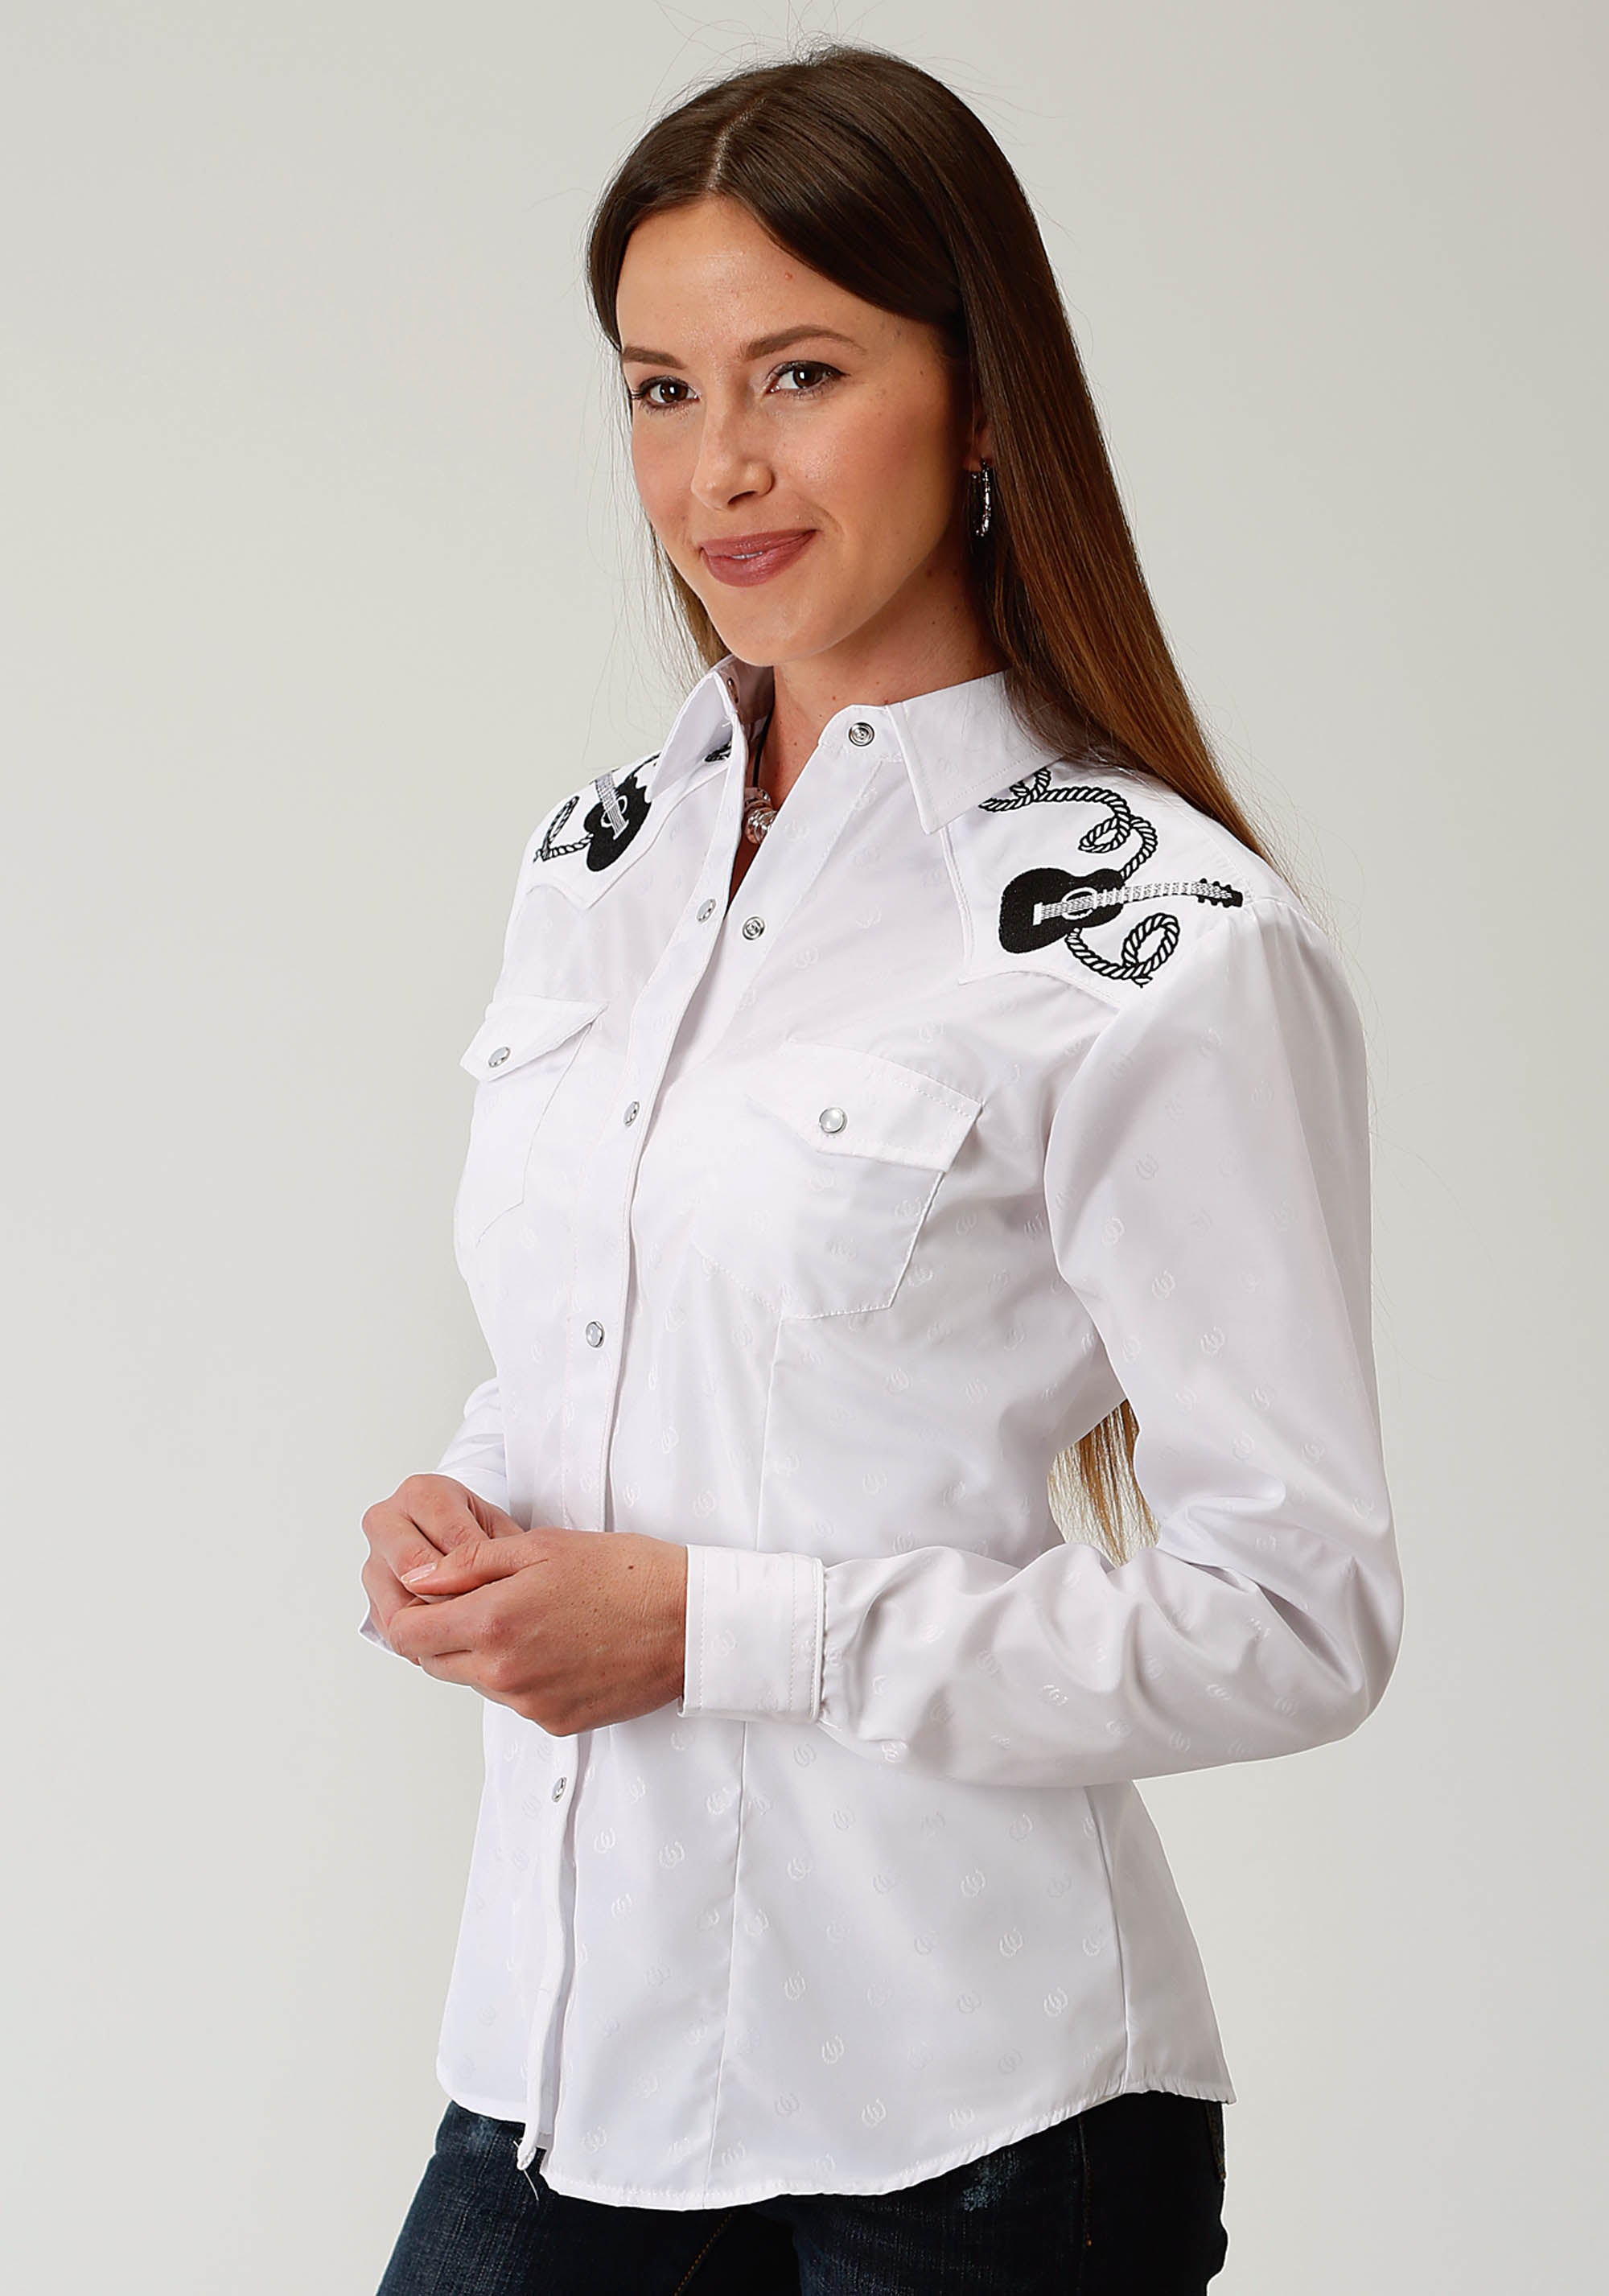 ROPER WOMENS WHITE 2023 TONE ON TONE HORSESHOES KARMAN SPECIAL STYLES LONG SLEEVE